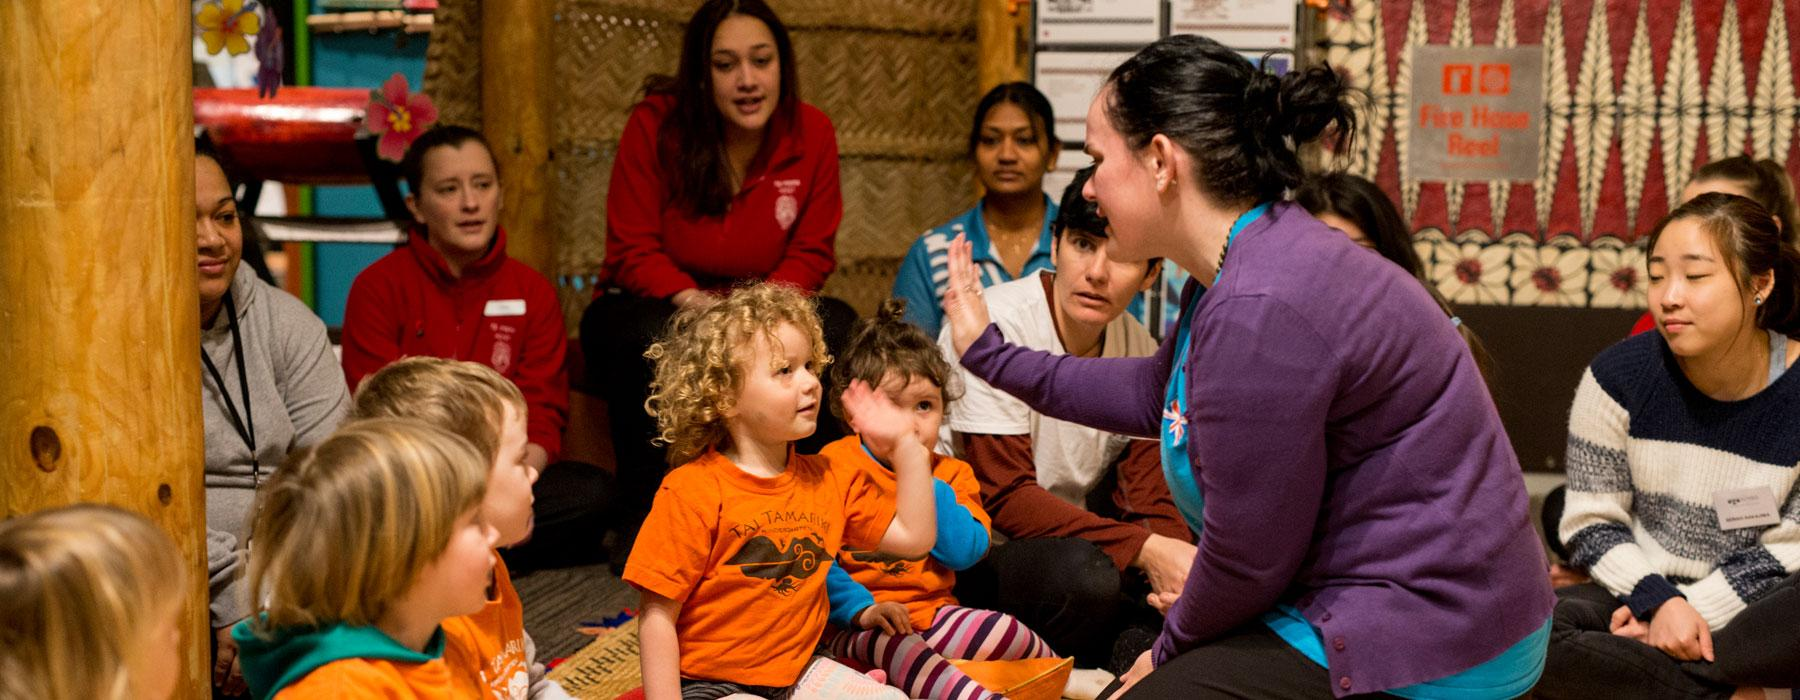 ECE visit to Planet Pasifika, 2015. Photograph by Michael Hall. Te Papa